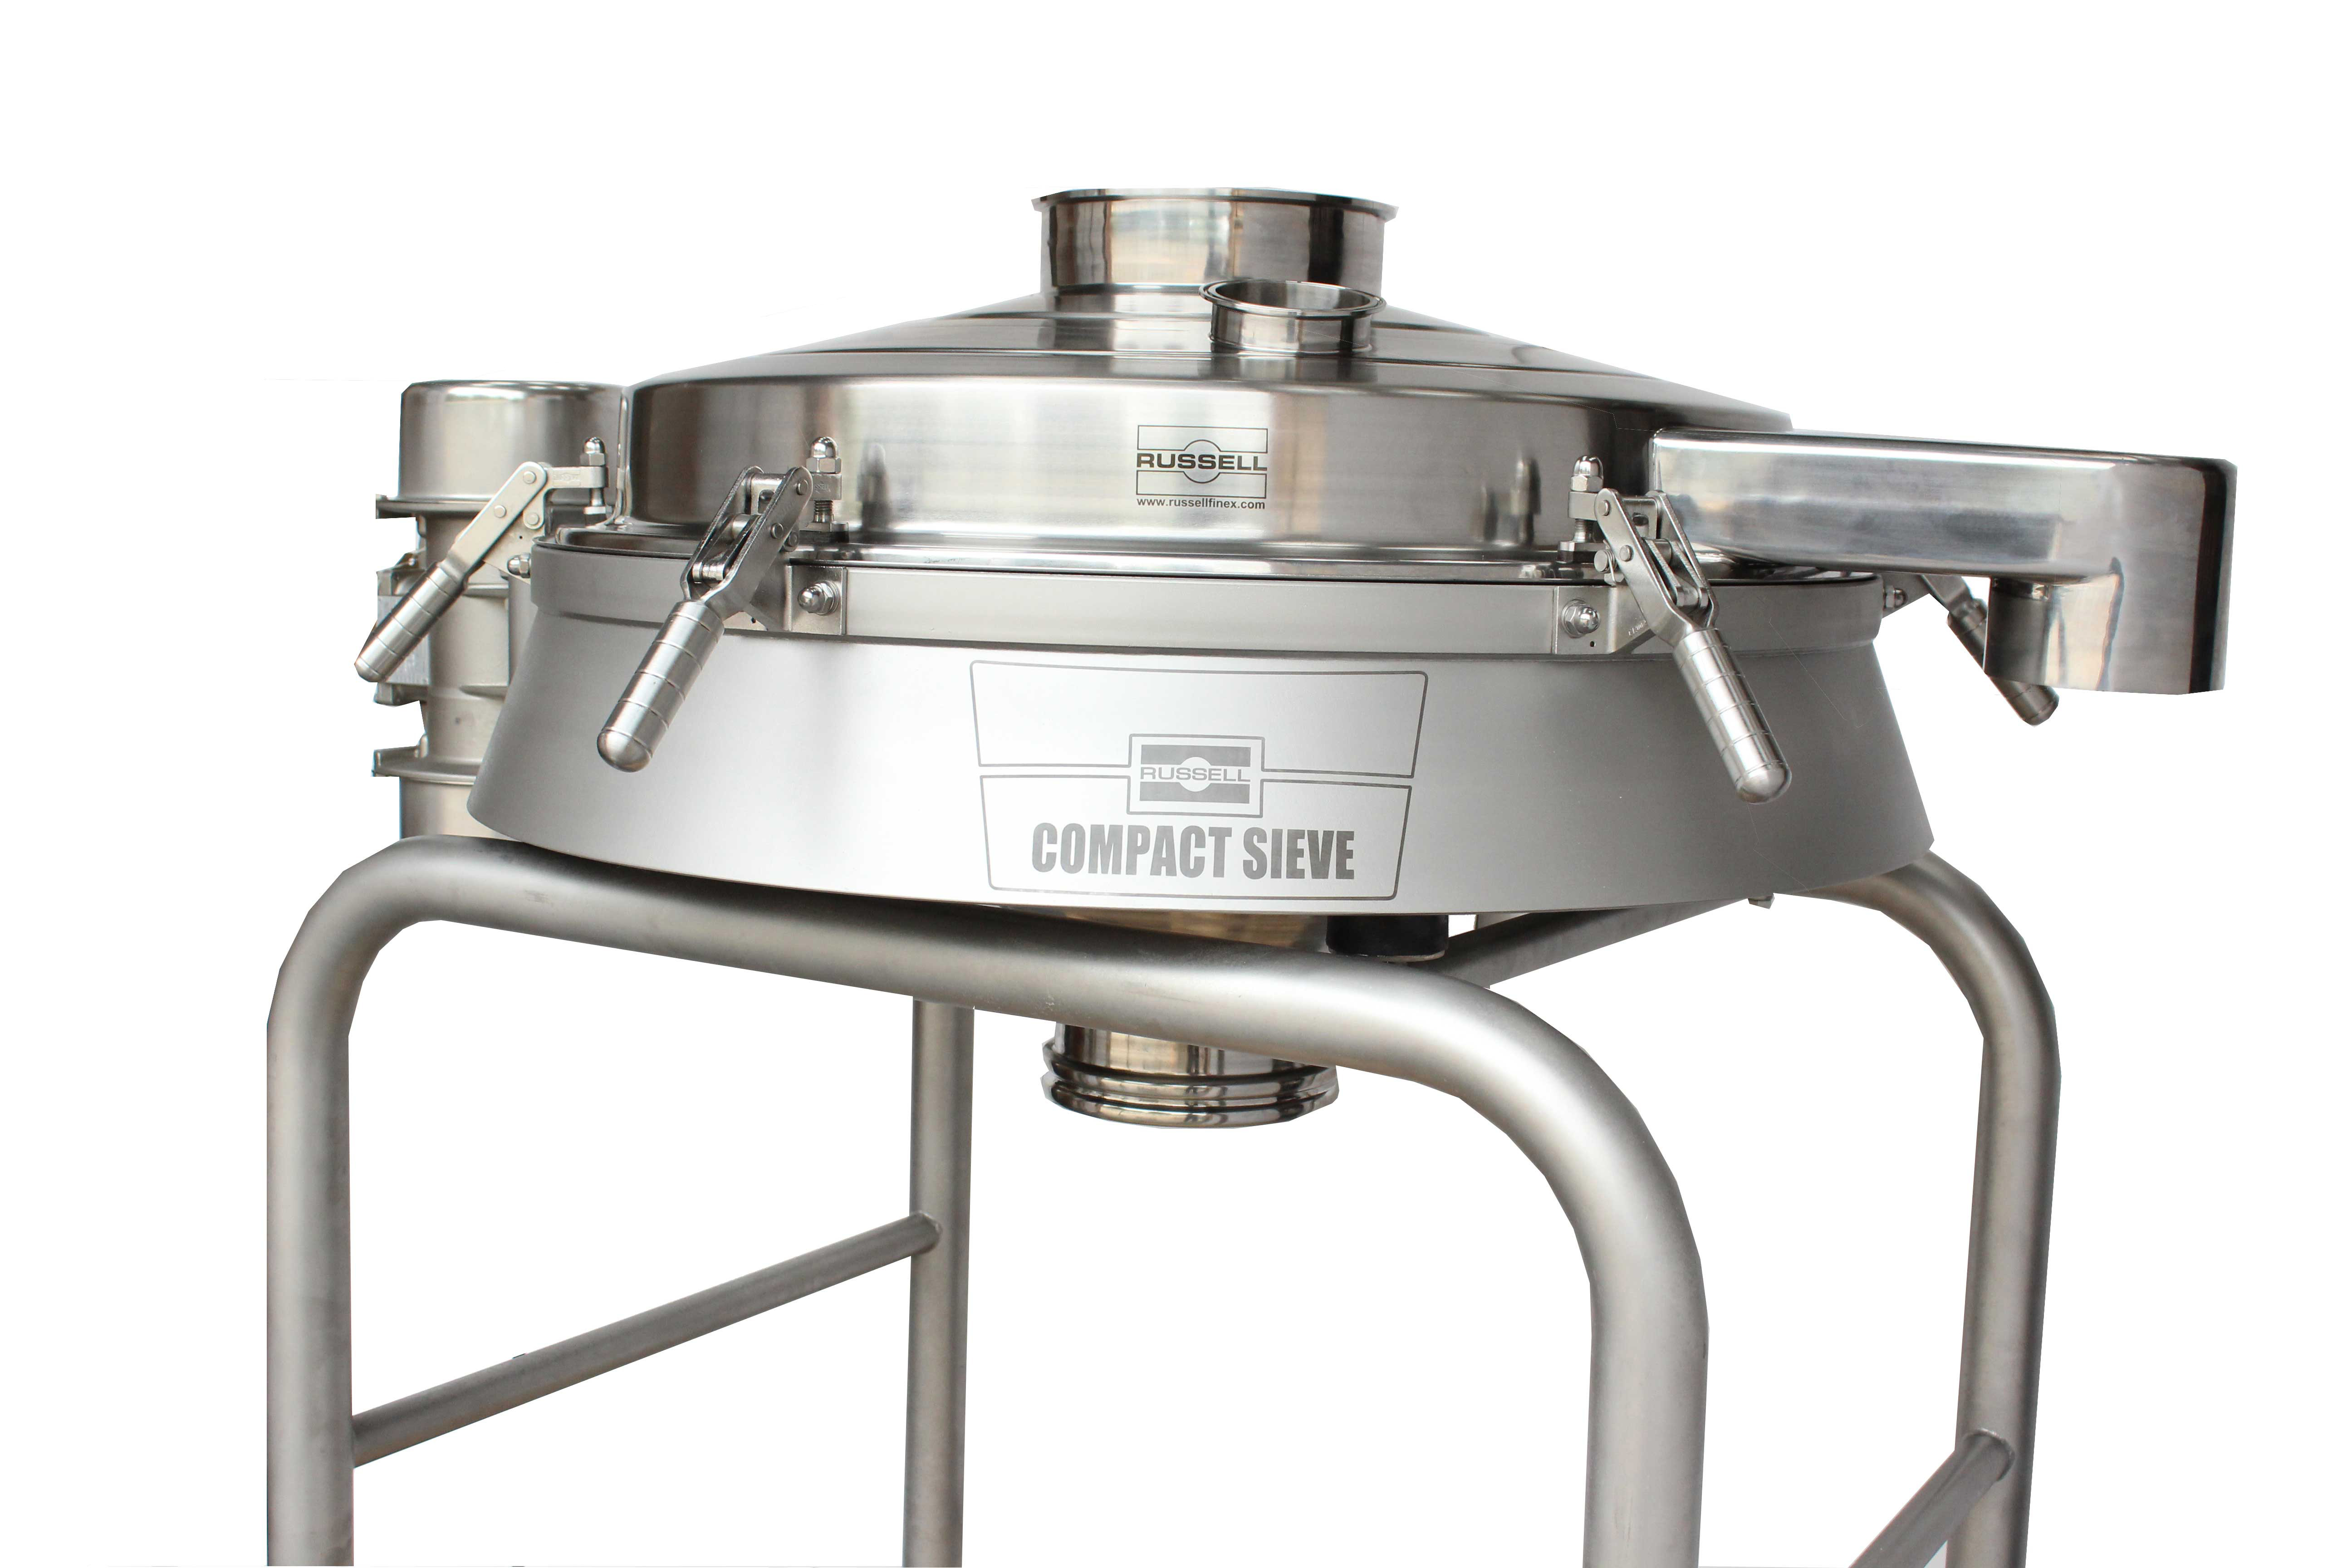 The hygenic design of the Compact Sieve meets the requirements of the 3-A sanitary standards